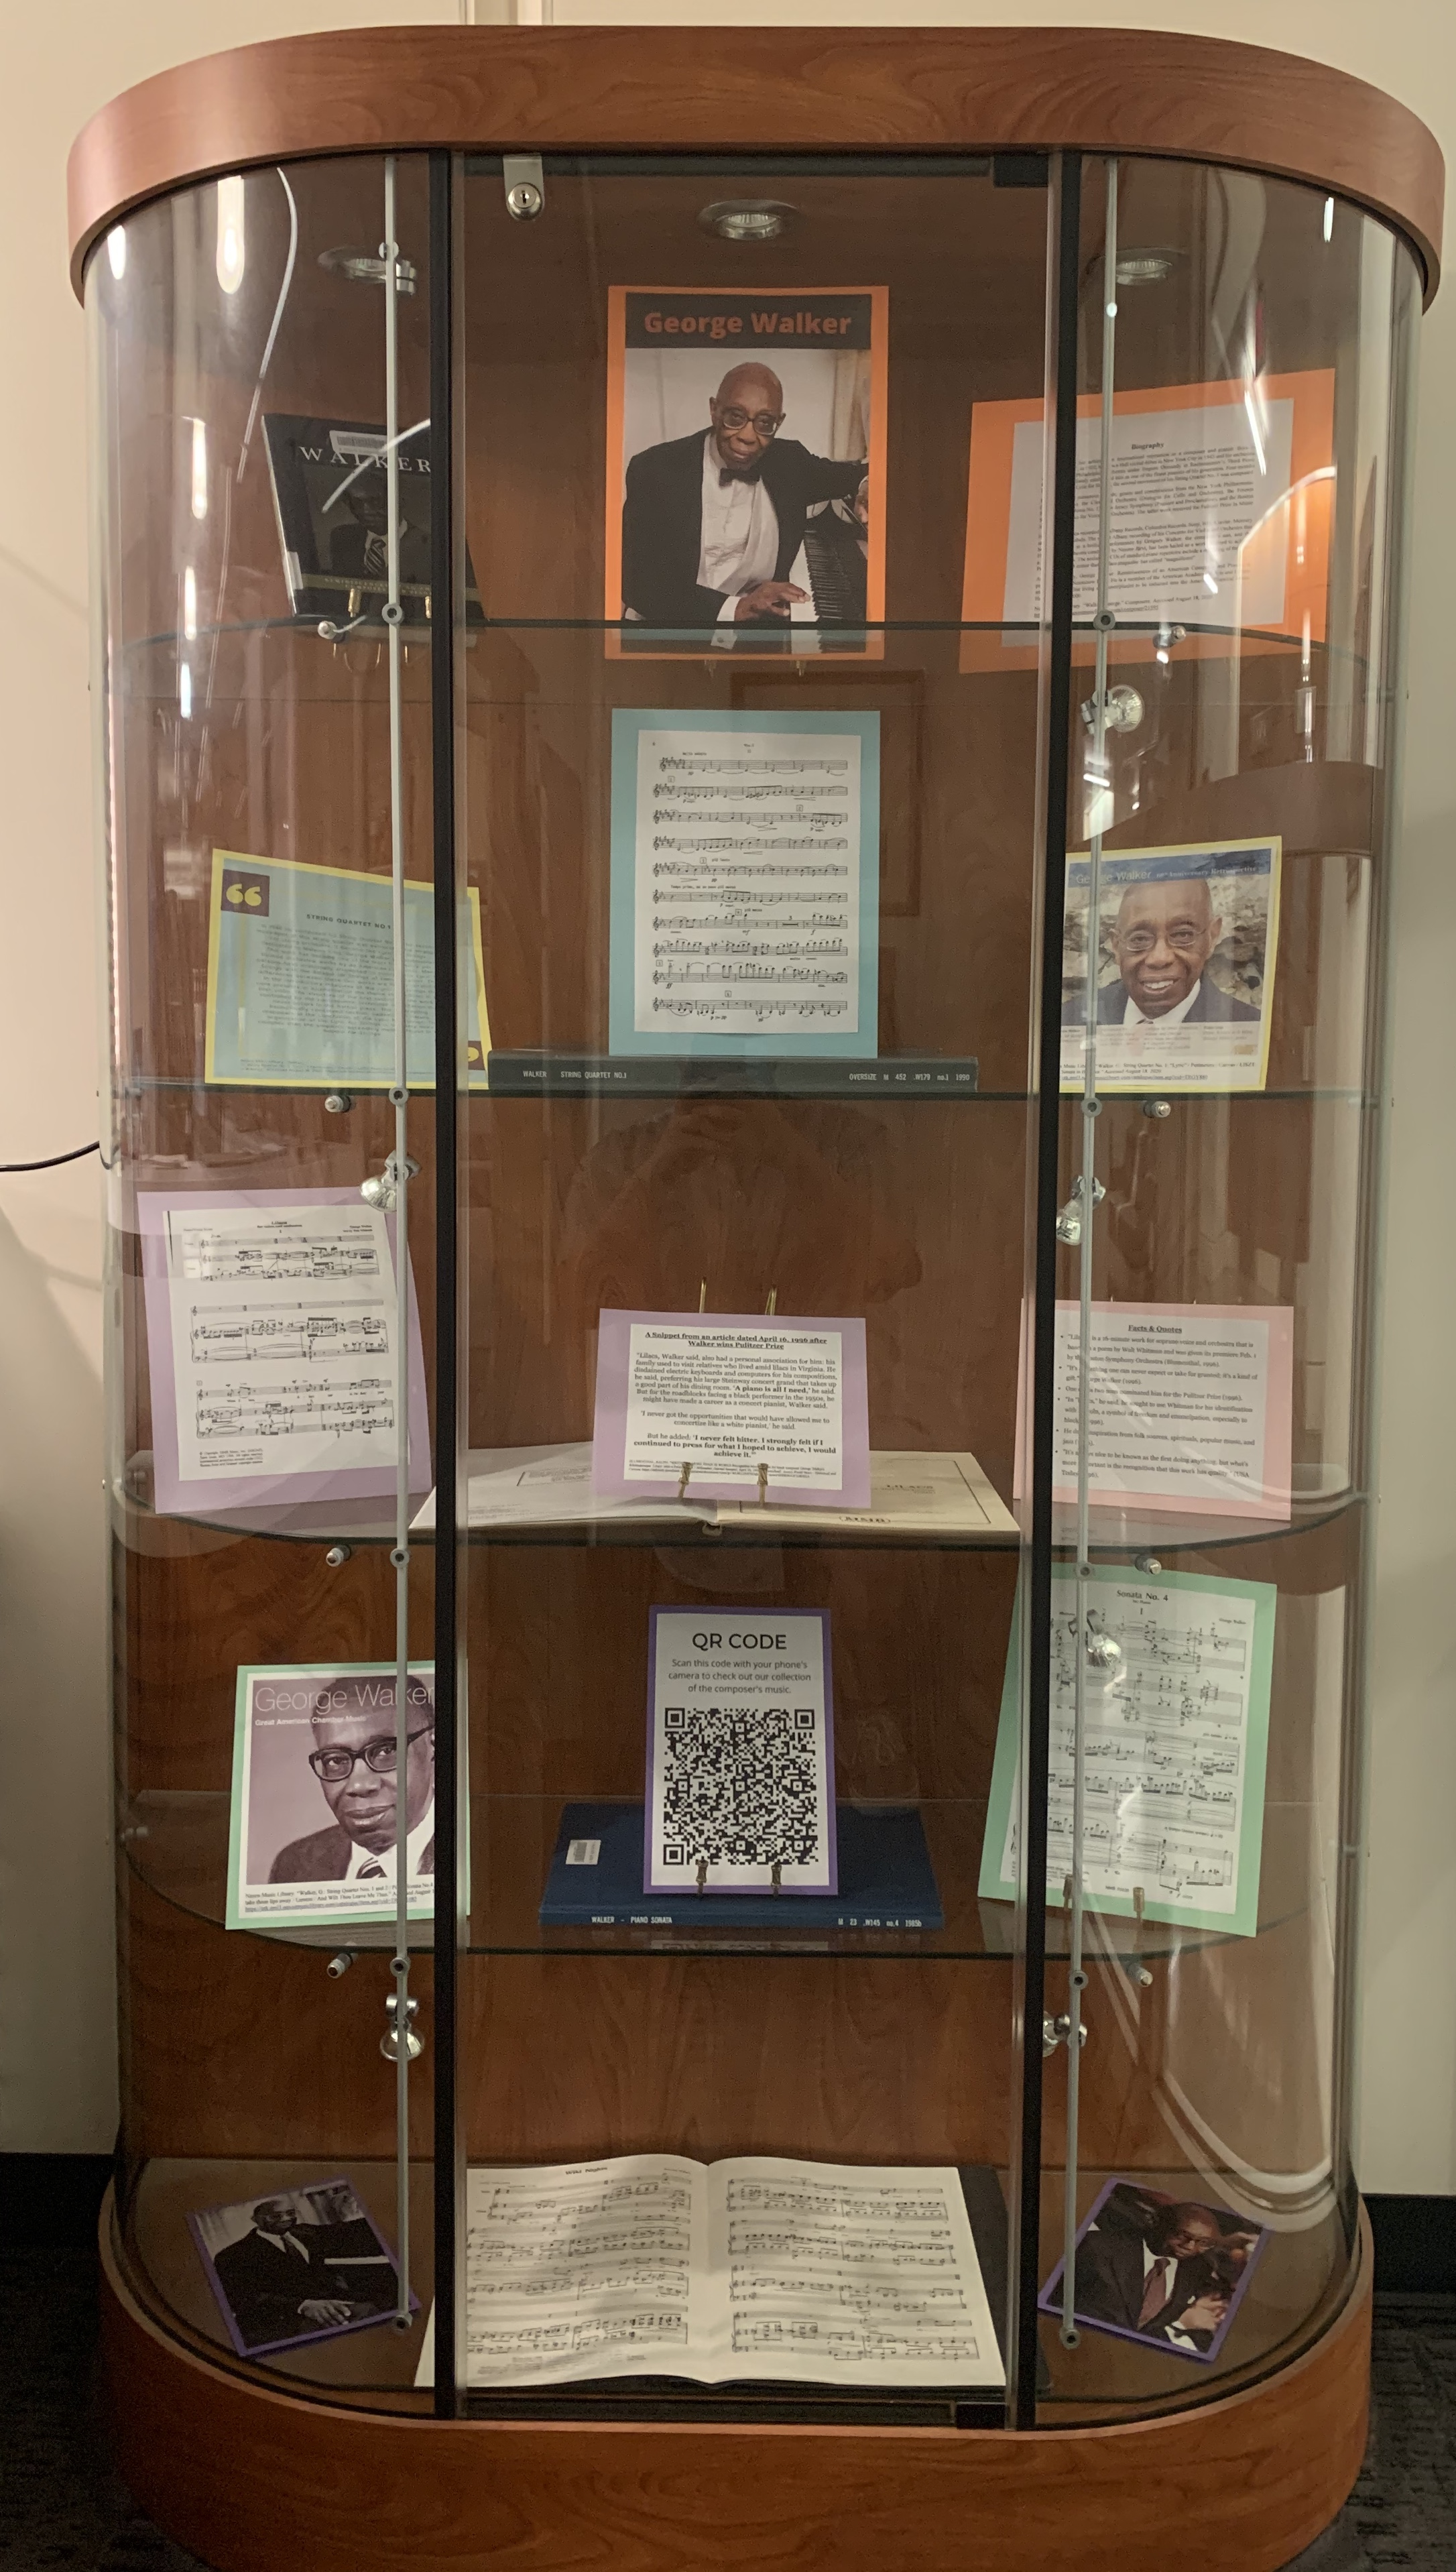 DeVine Music Library Display Case featuring the George Walker collection and materials